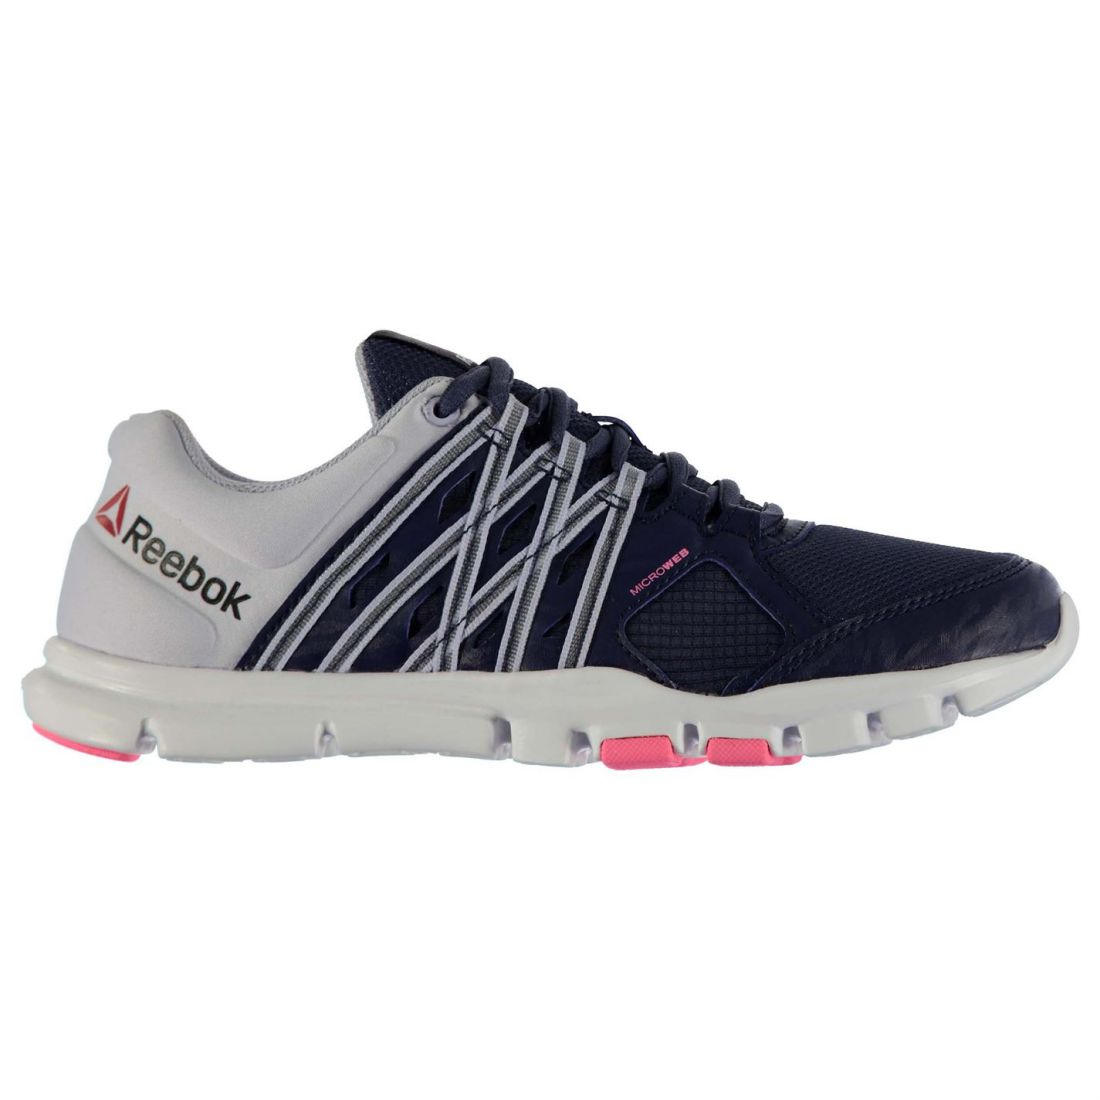 1c8039a6a61 2 di 7 Reebok Ladies Yourflex Train Sneakers Trainers Breathable Shoes  Lightweight